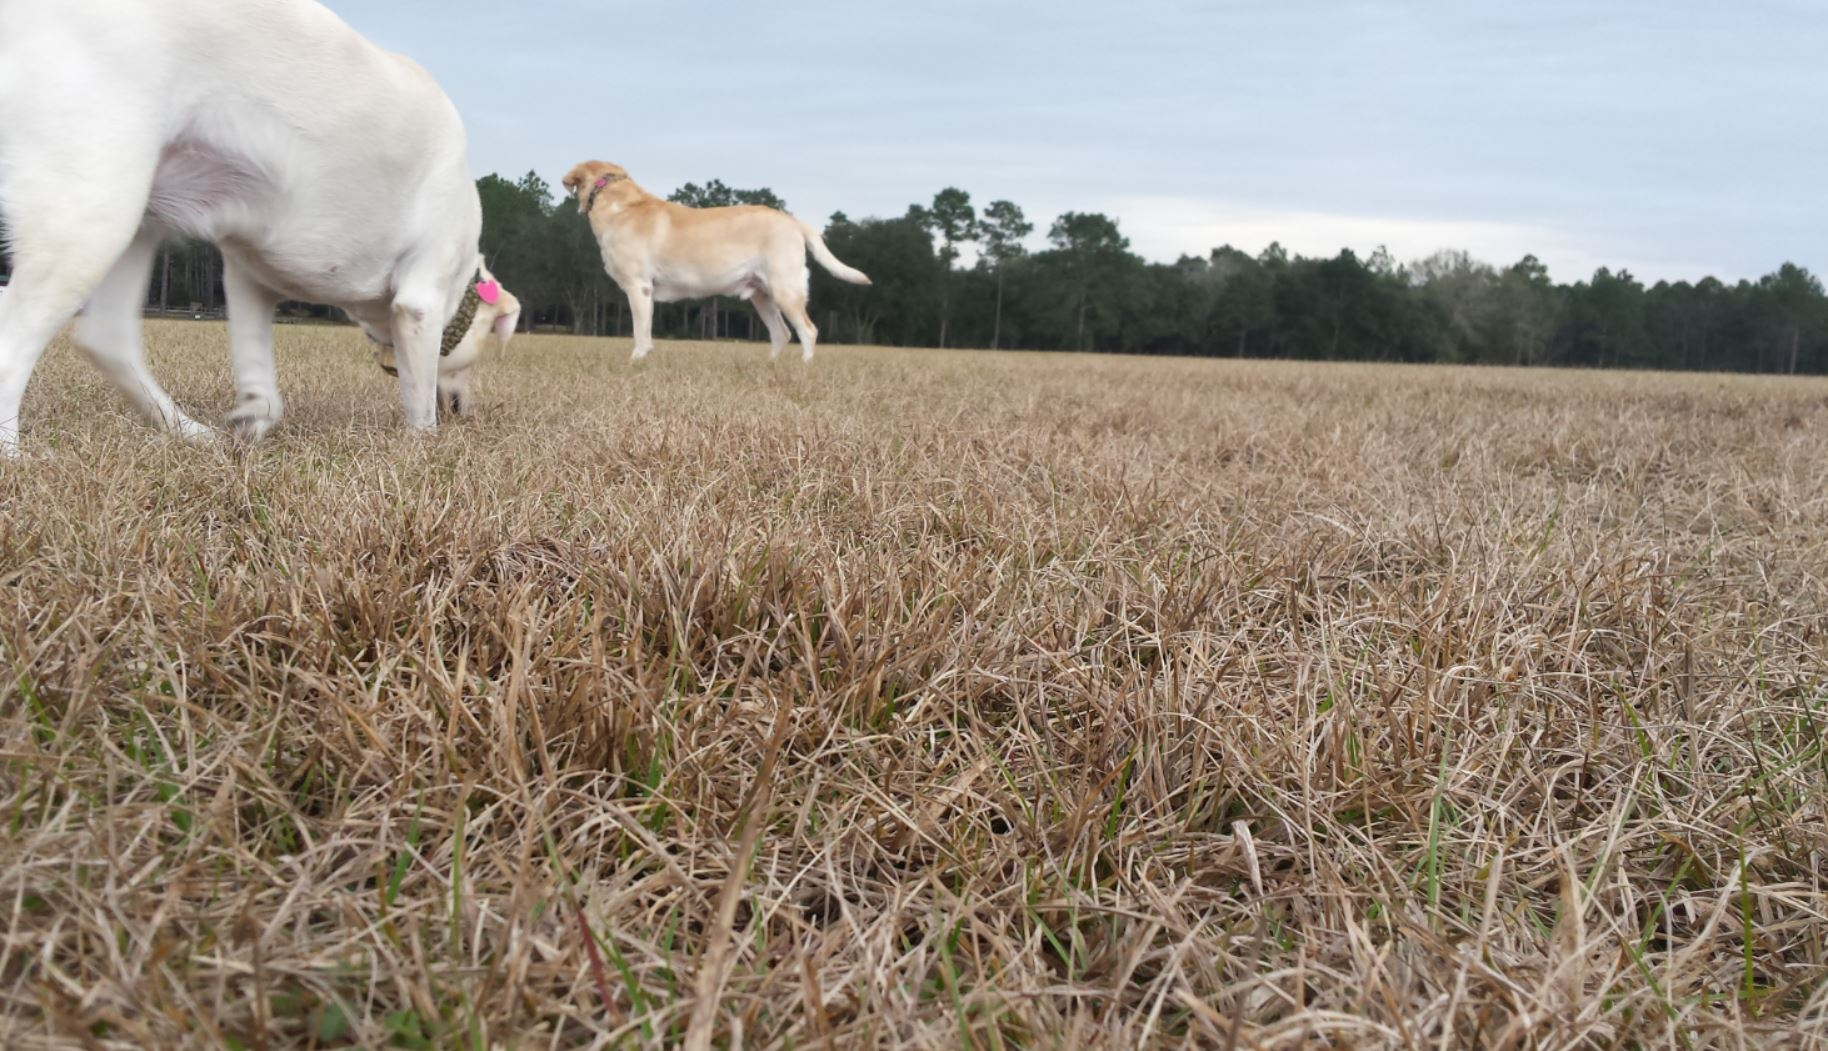 Two yellow labs standing in an open field of browned winter grass looking to new pathways to explore.